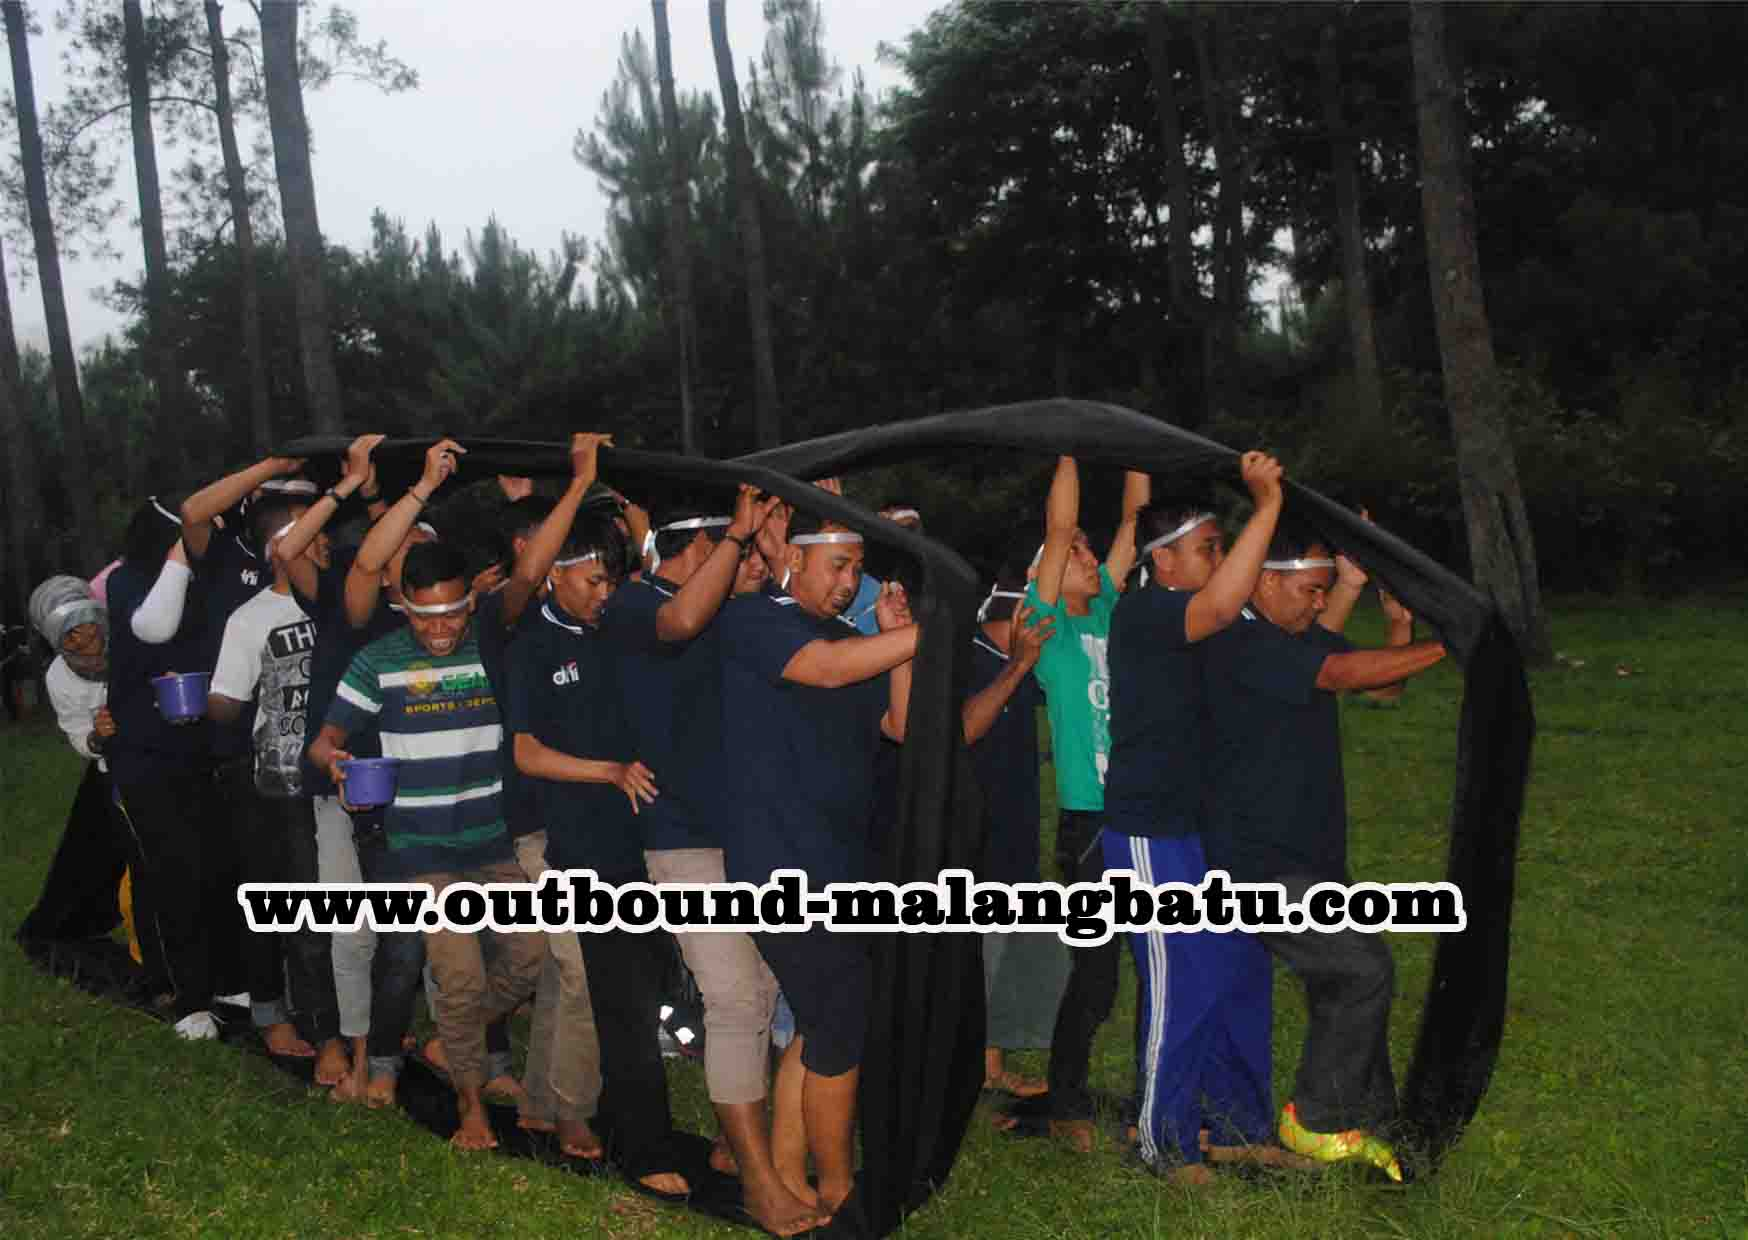 outbound training program, outbound training games, outbound training adalah, outbound training di batu malang outbound training di batu, outbound team building training program, outbound malang batu, outbound malang murah, outbound malang harga, outbound di malang, paket outbound malang, outbound anak malang, paket outbound anak malang, tempat outbound anak malang, wisata outbound batu malang, paket outbound di malang,